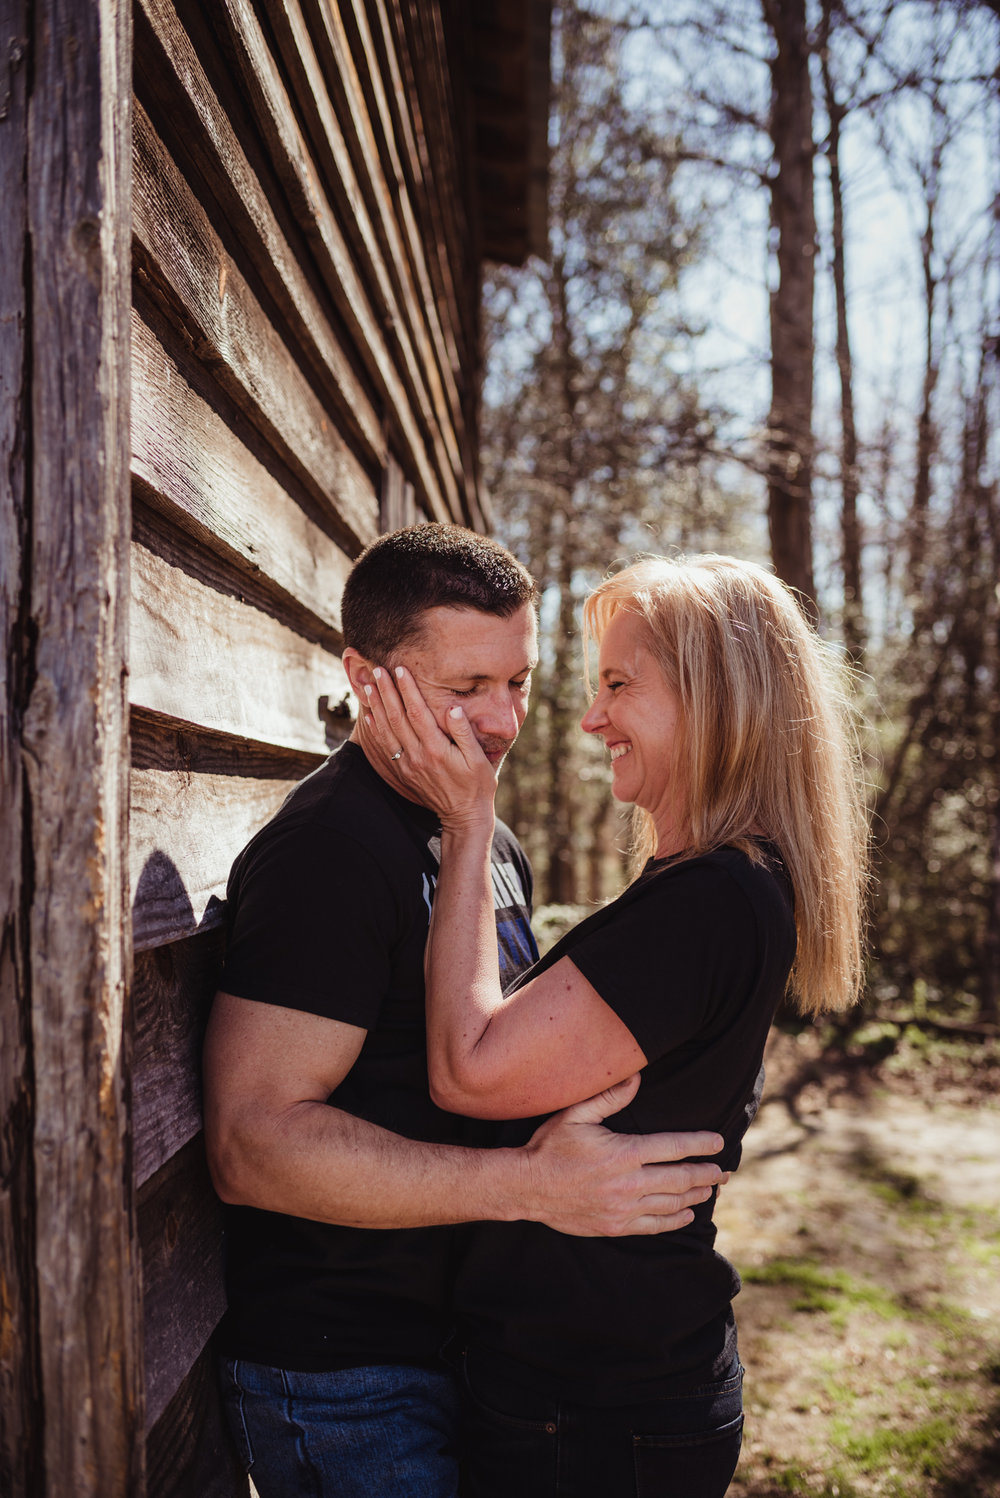 The couple snuggle each other on a barn in the morning light during their engagement session with Rose Trail Images in Wake Forest, NC.